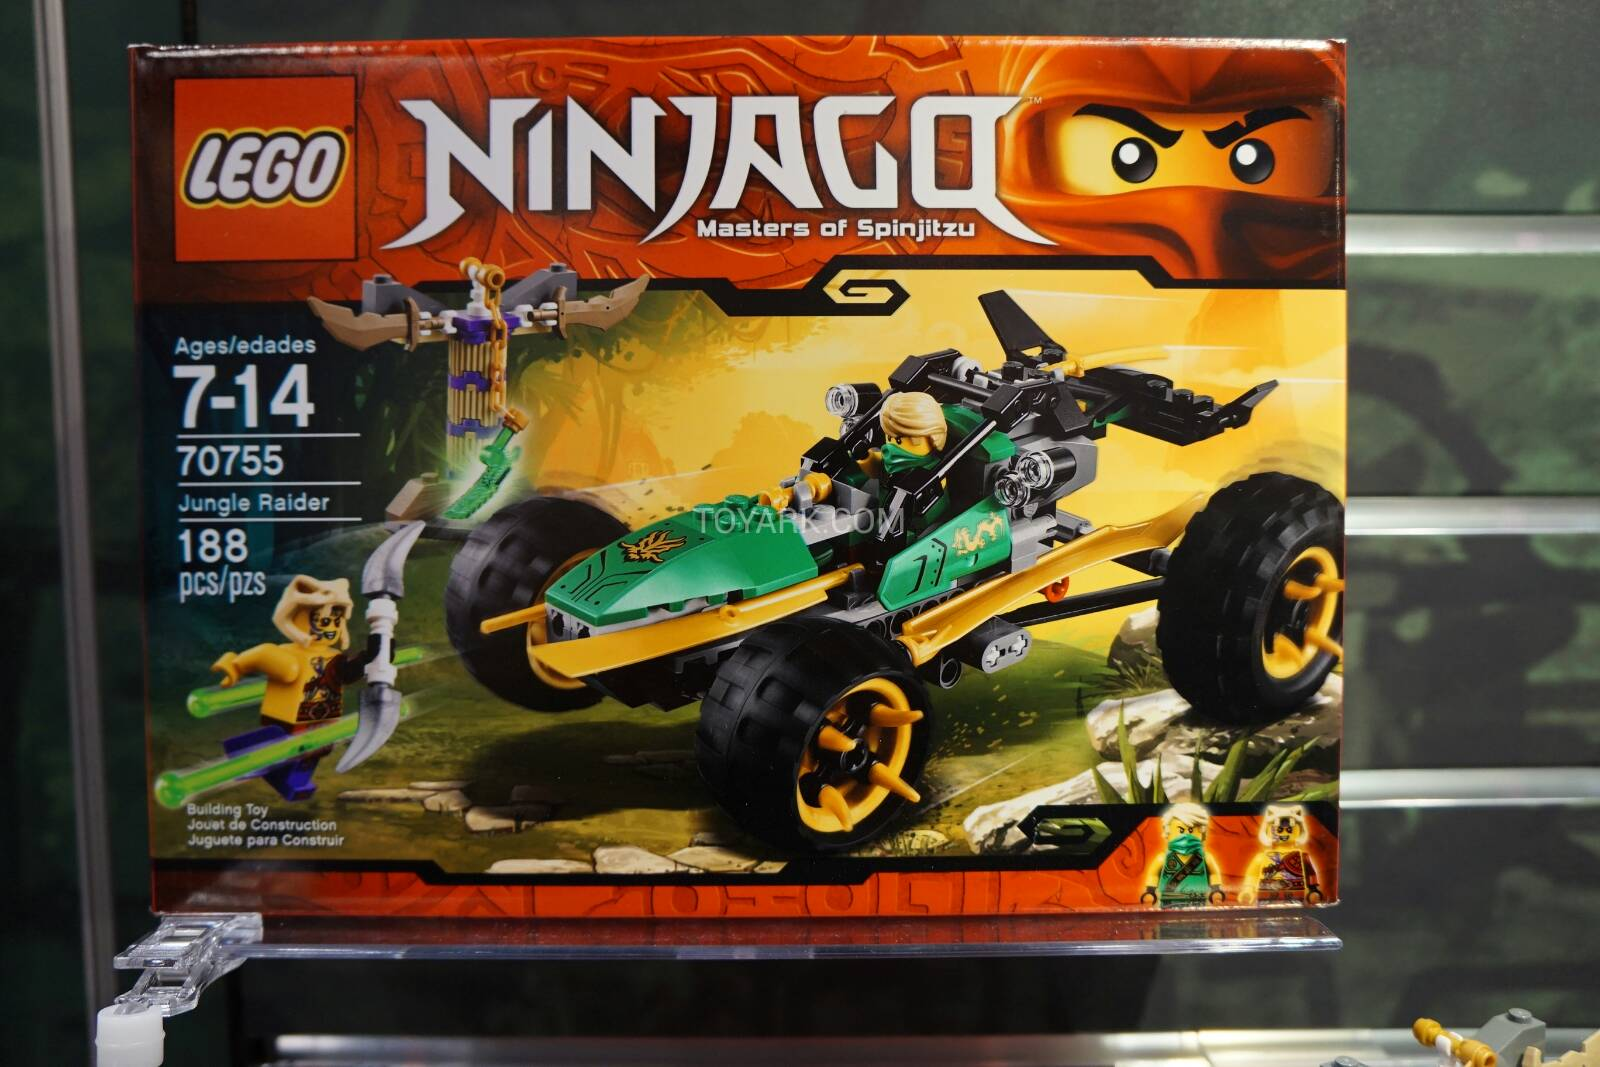 Ninjago Sets News Toyark Toy Fair Lego From The 2015 f76YgbvIy